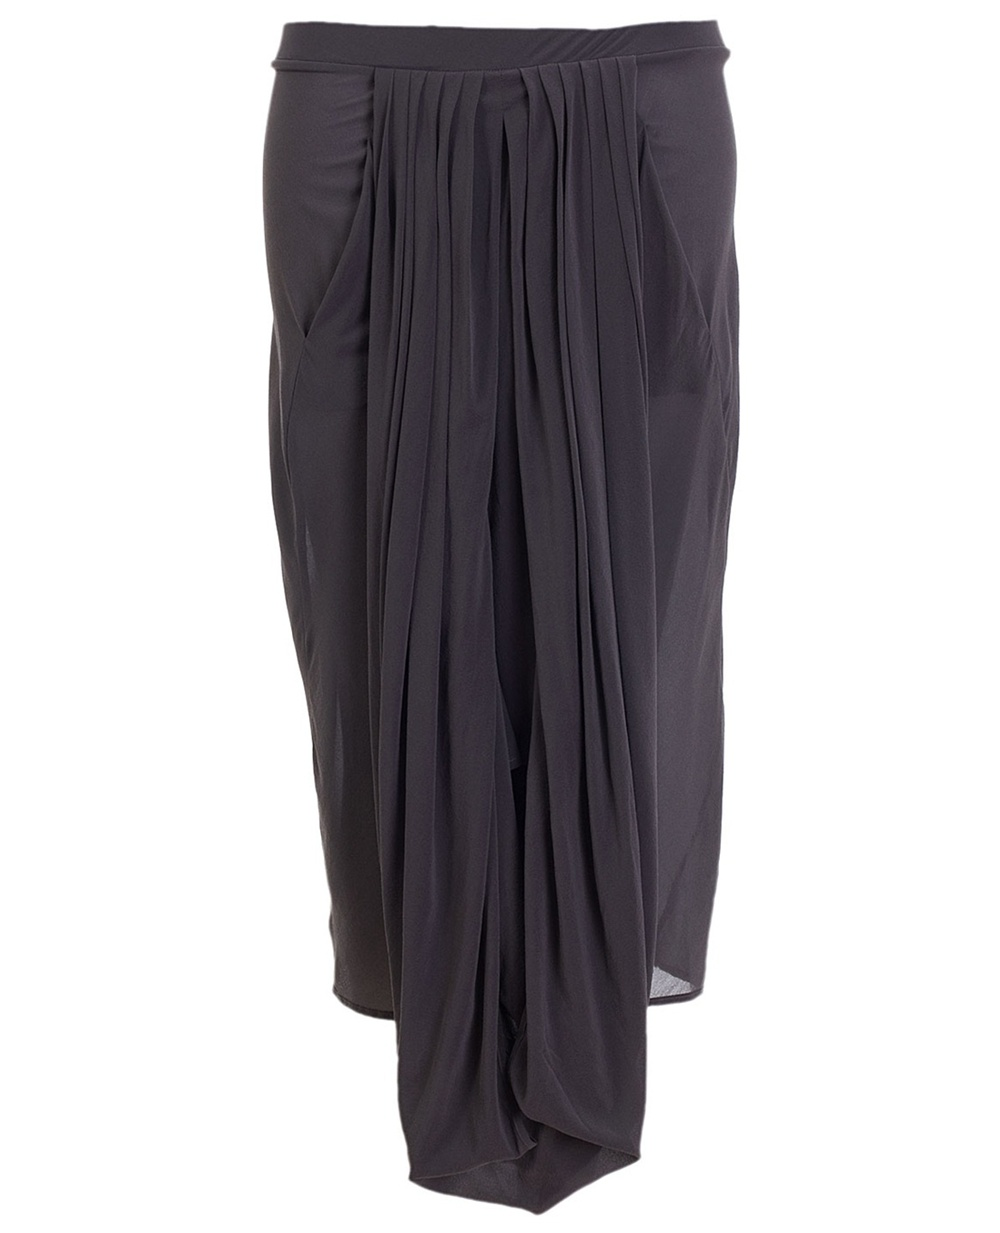 THE STYLE CURATOR: Trend report: See through midi skirt